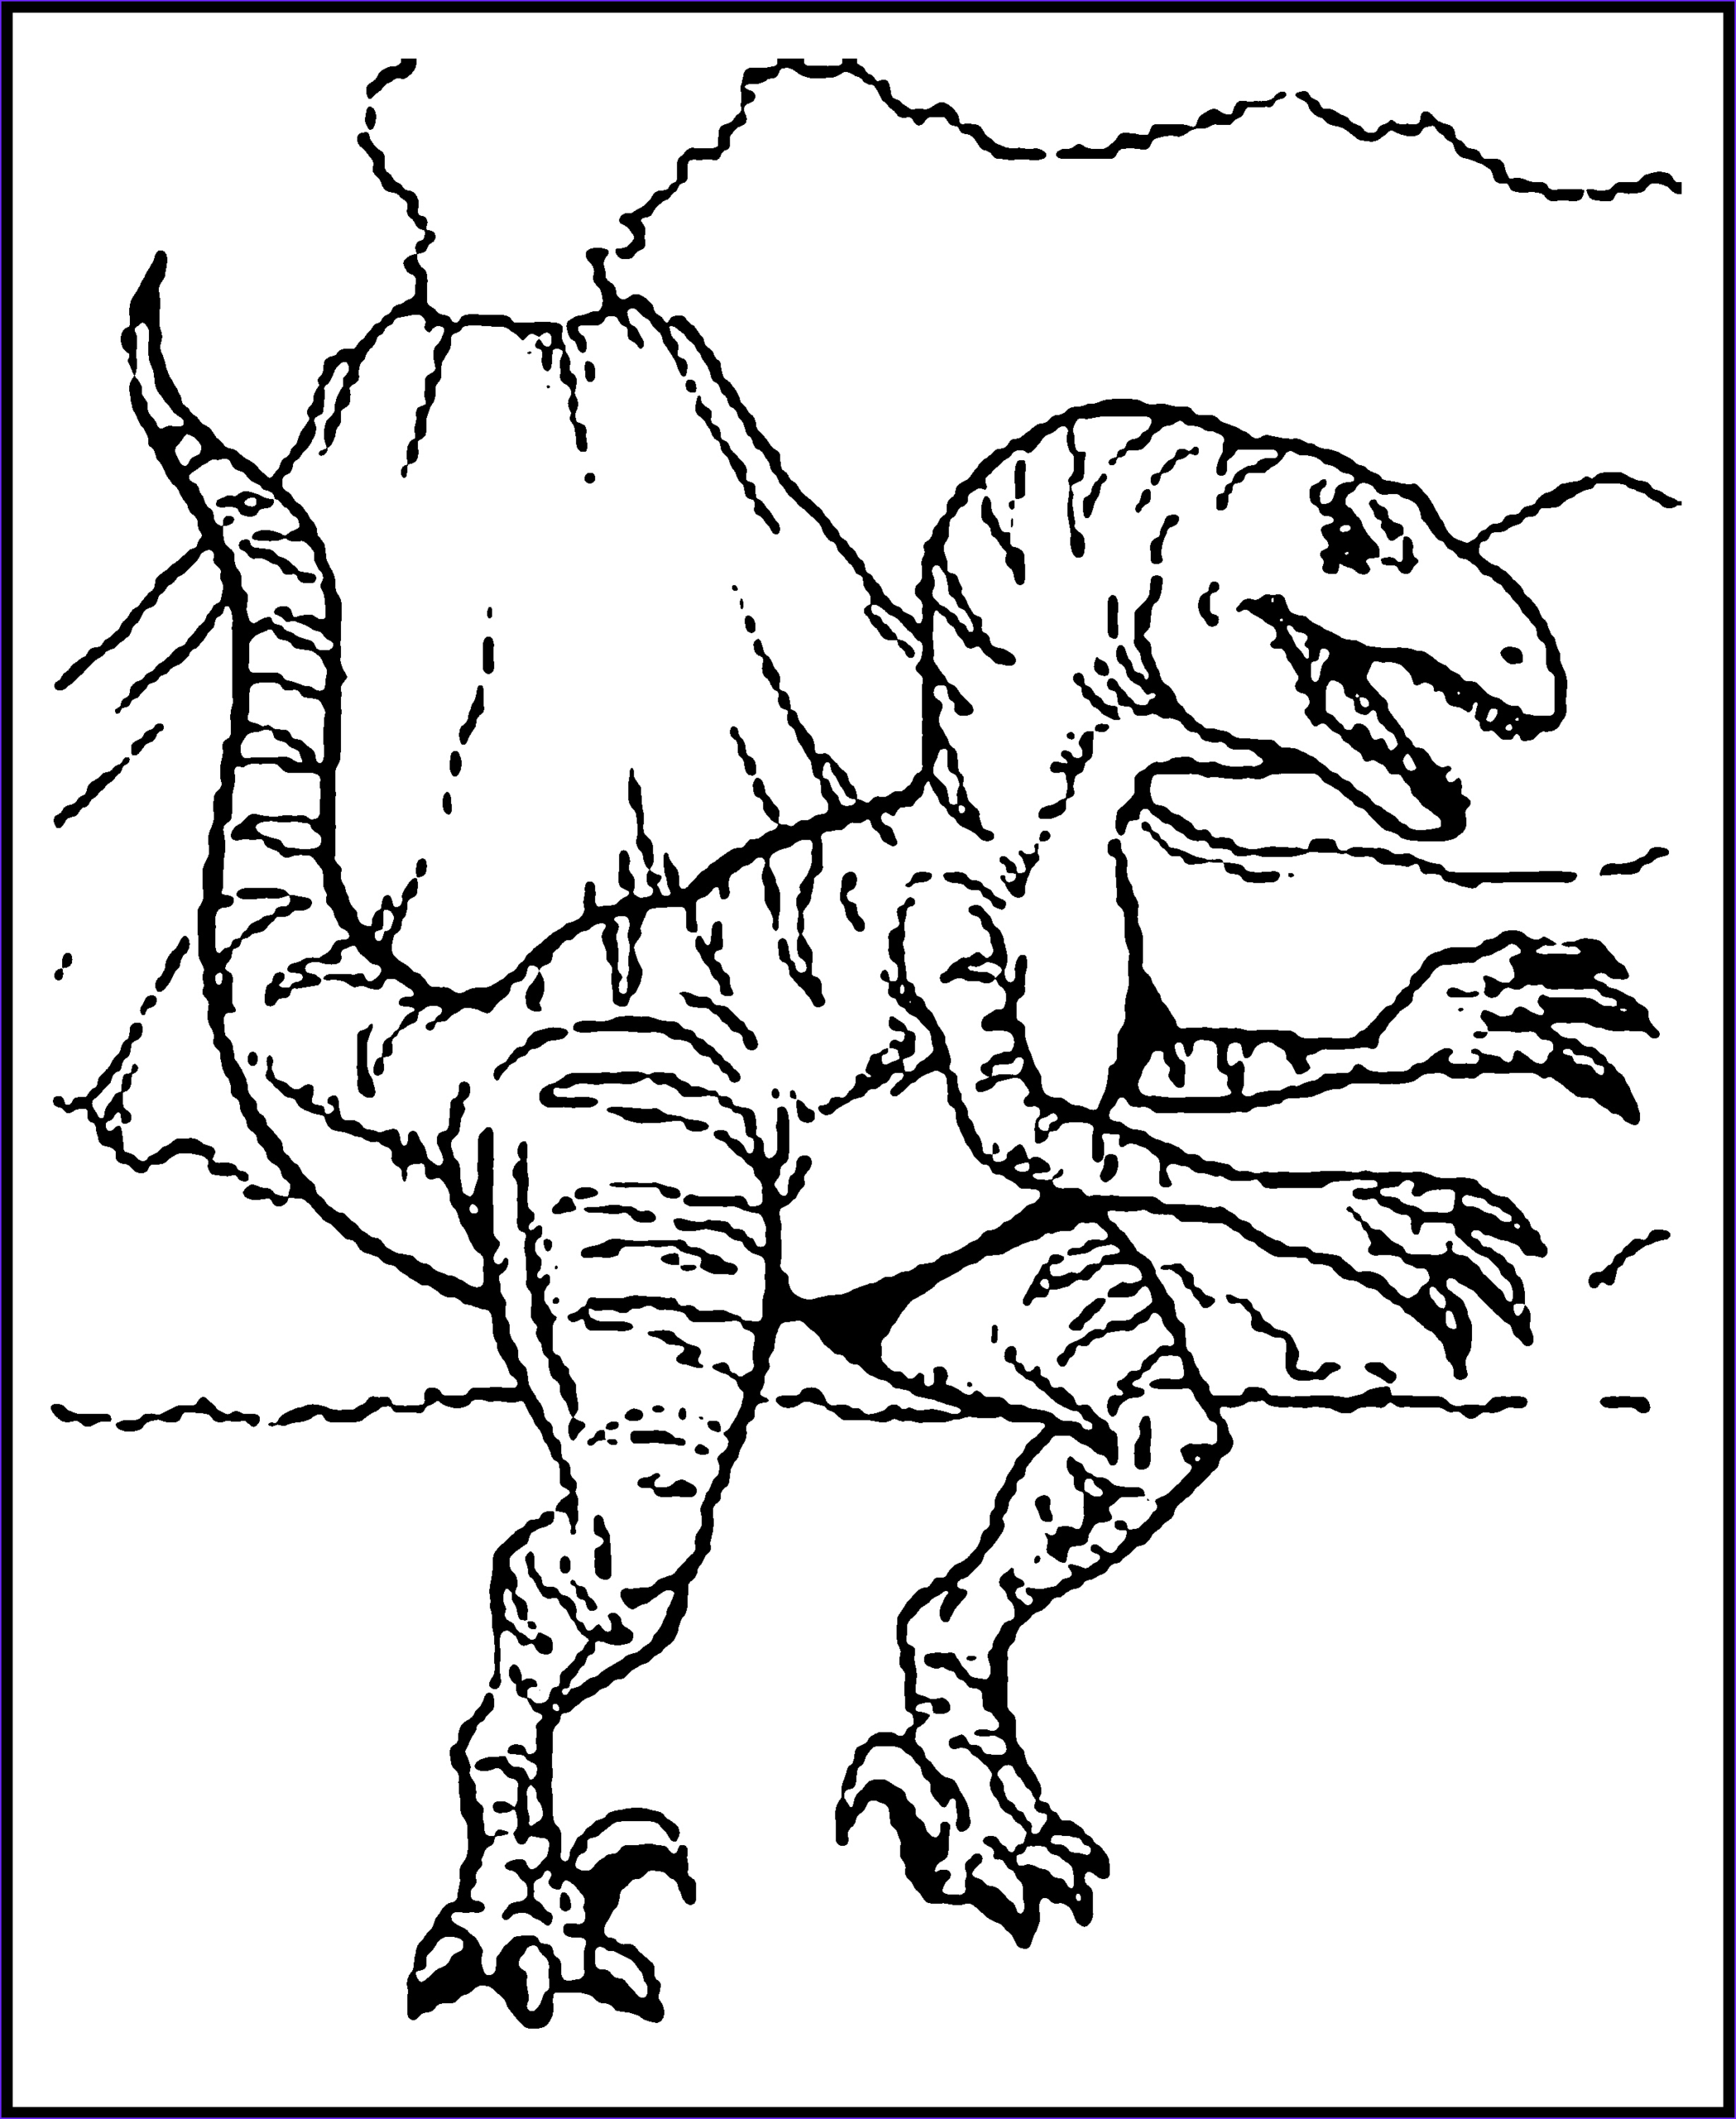 Coloring Page Dinosaur Unique Photos Free Printable Dinosaur Coloring Pages for Kids